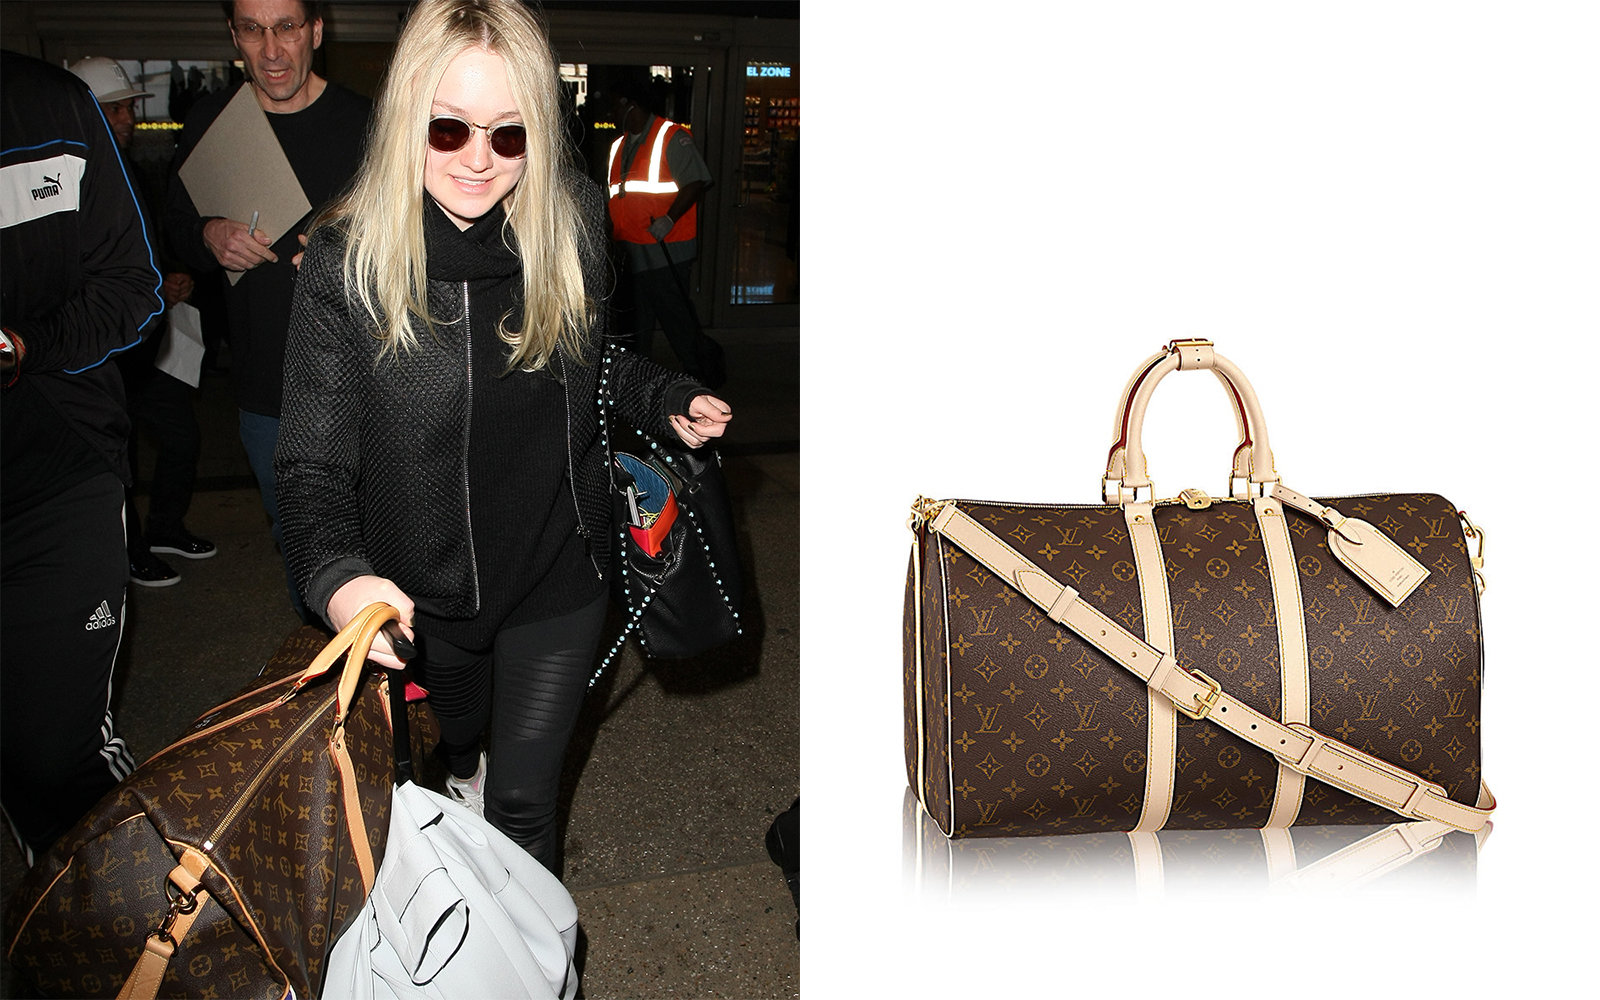 louis vuitton bags celebrities. louis vuitton dakota fanning celebrity luggage bags celebrities s